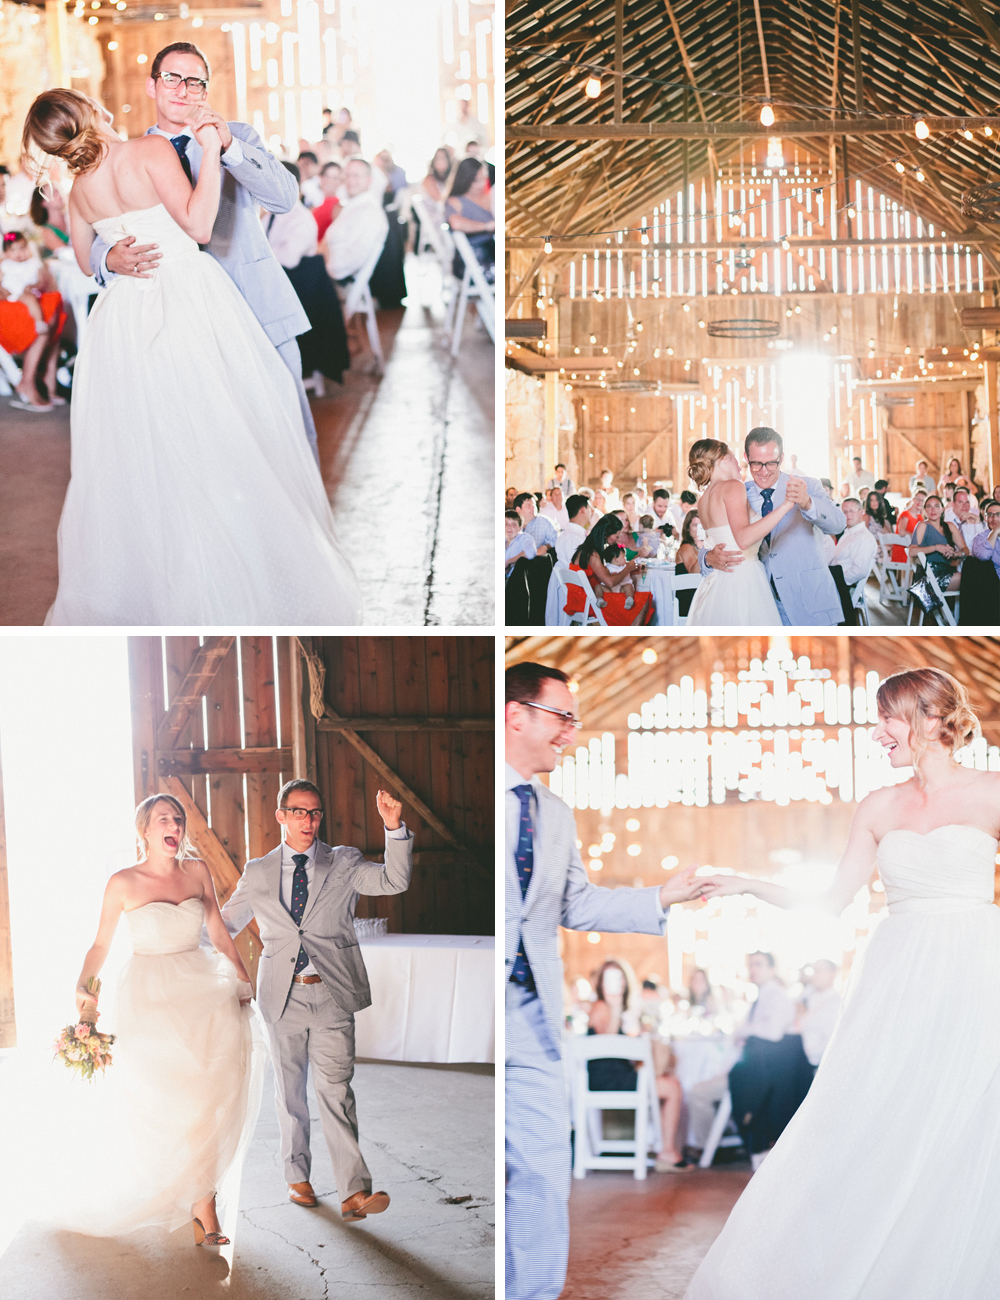 Fun Jewish Wedding at Santa Margarita Ranch